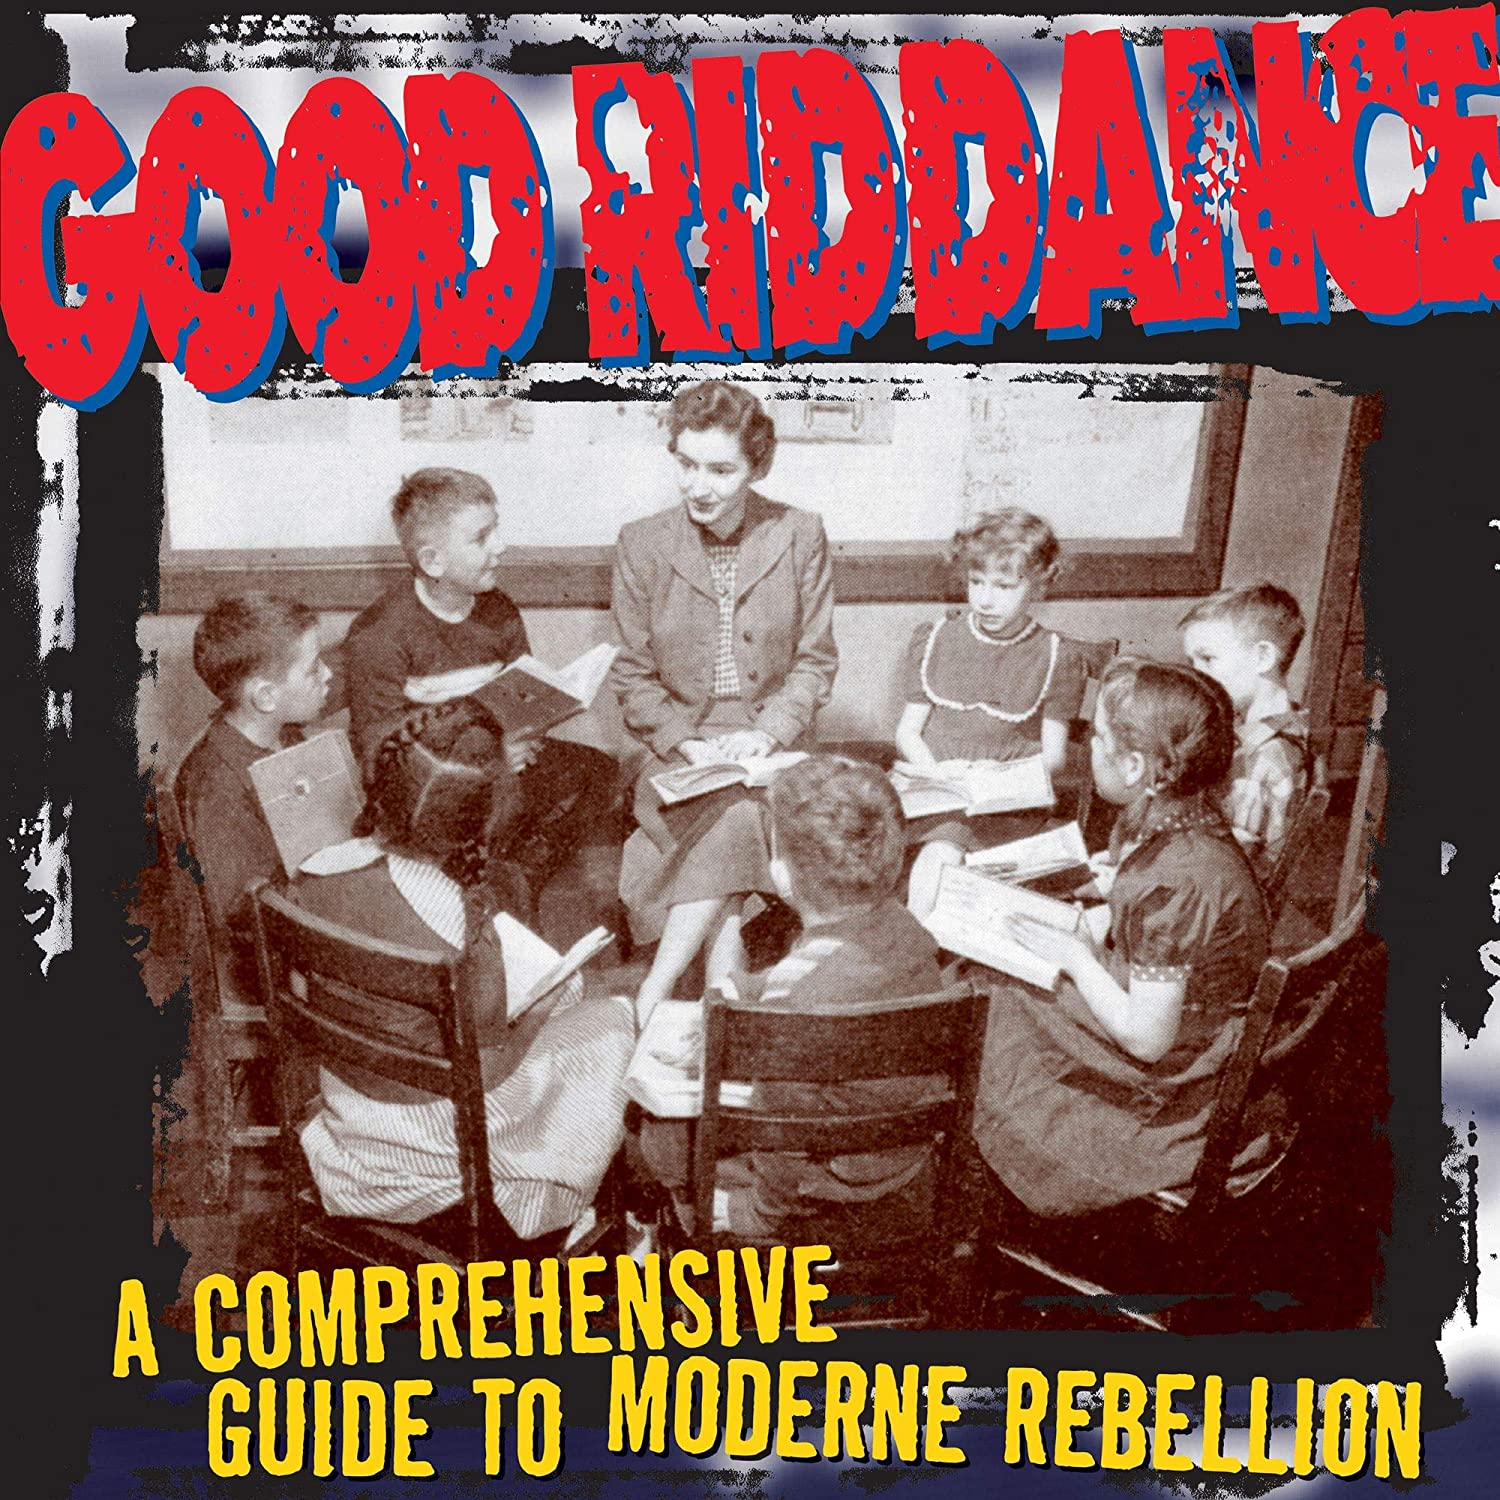 Good Riddance/A Comprehensive Guide To Modren Rebellion [LP]